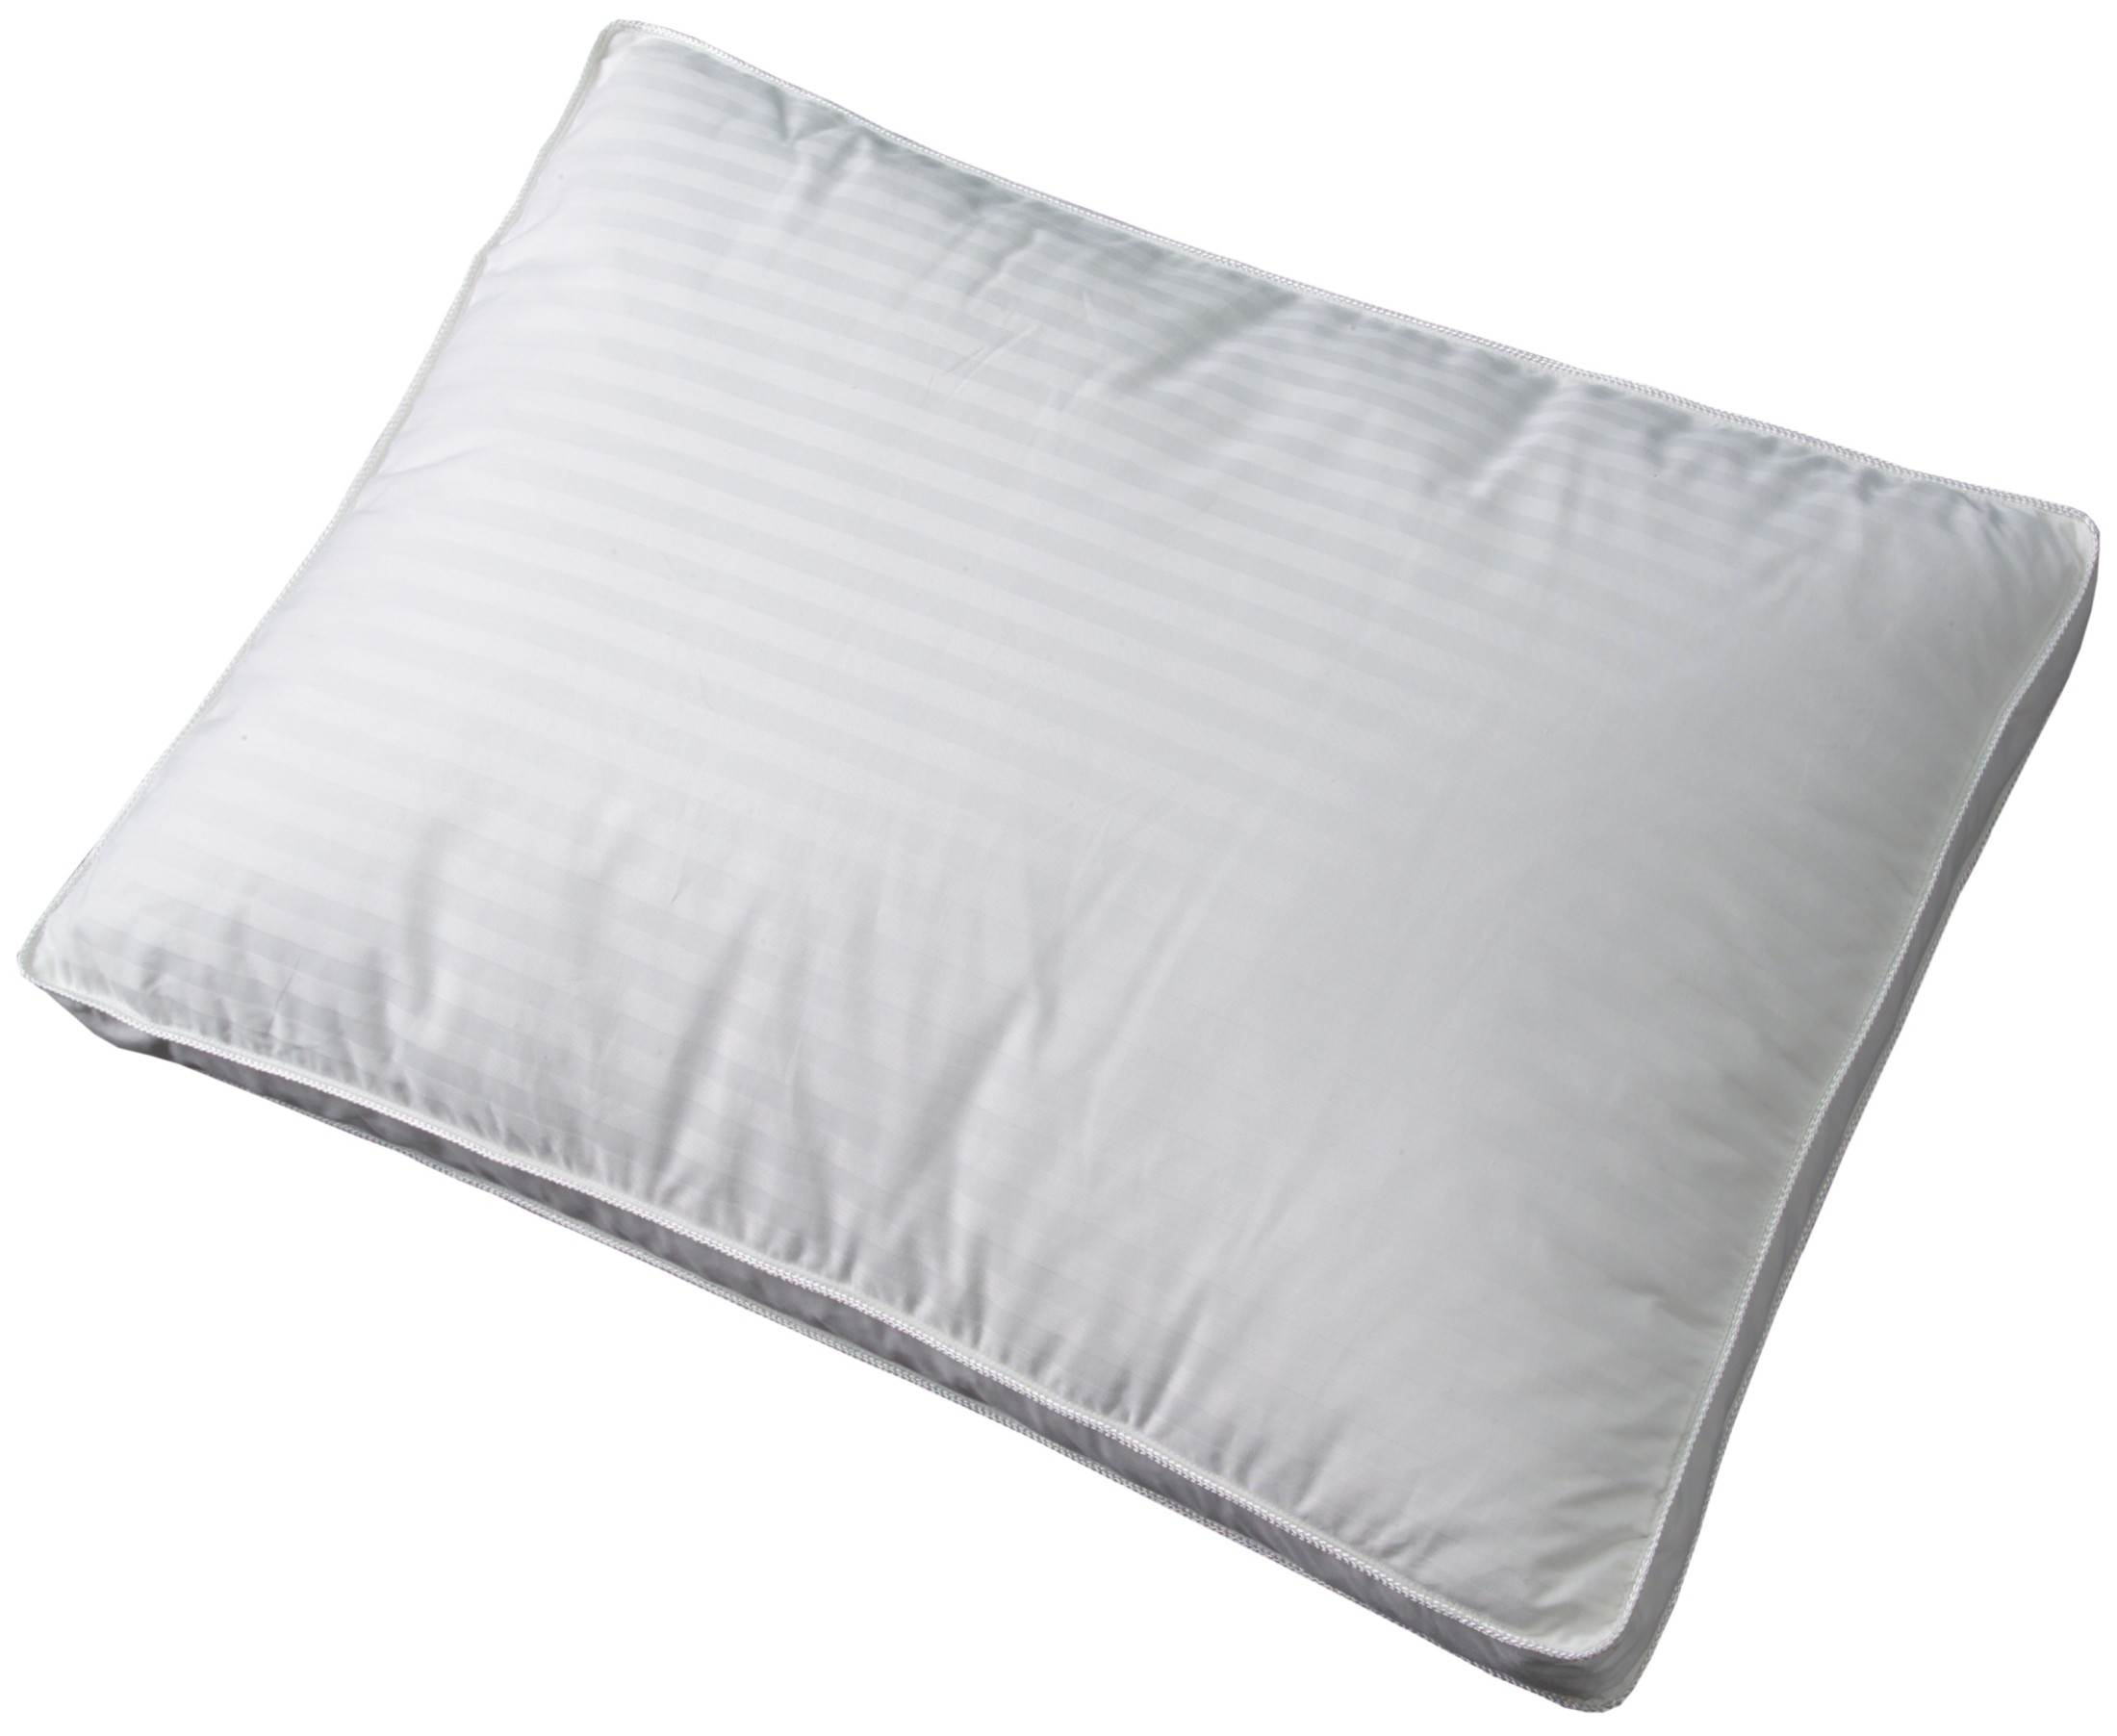 Triple Queen Size Pillow from Fashion Bed Group QG0046  Coleman Furniture